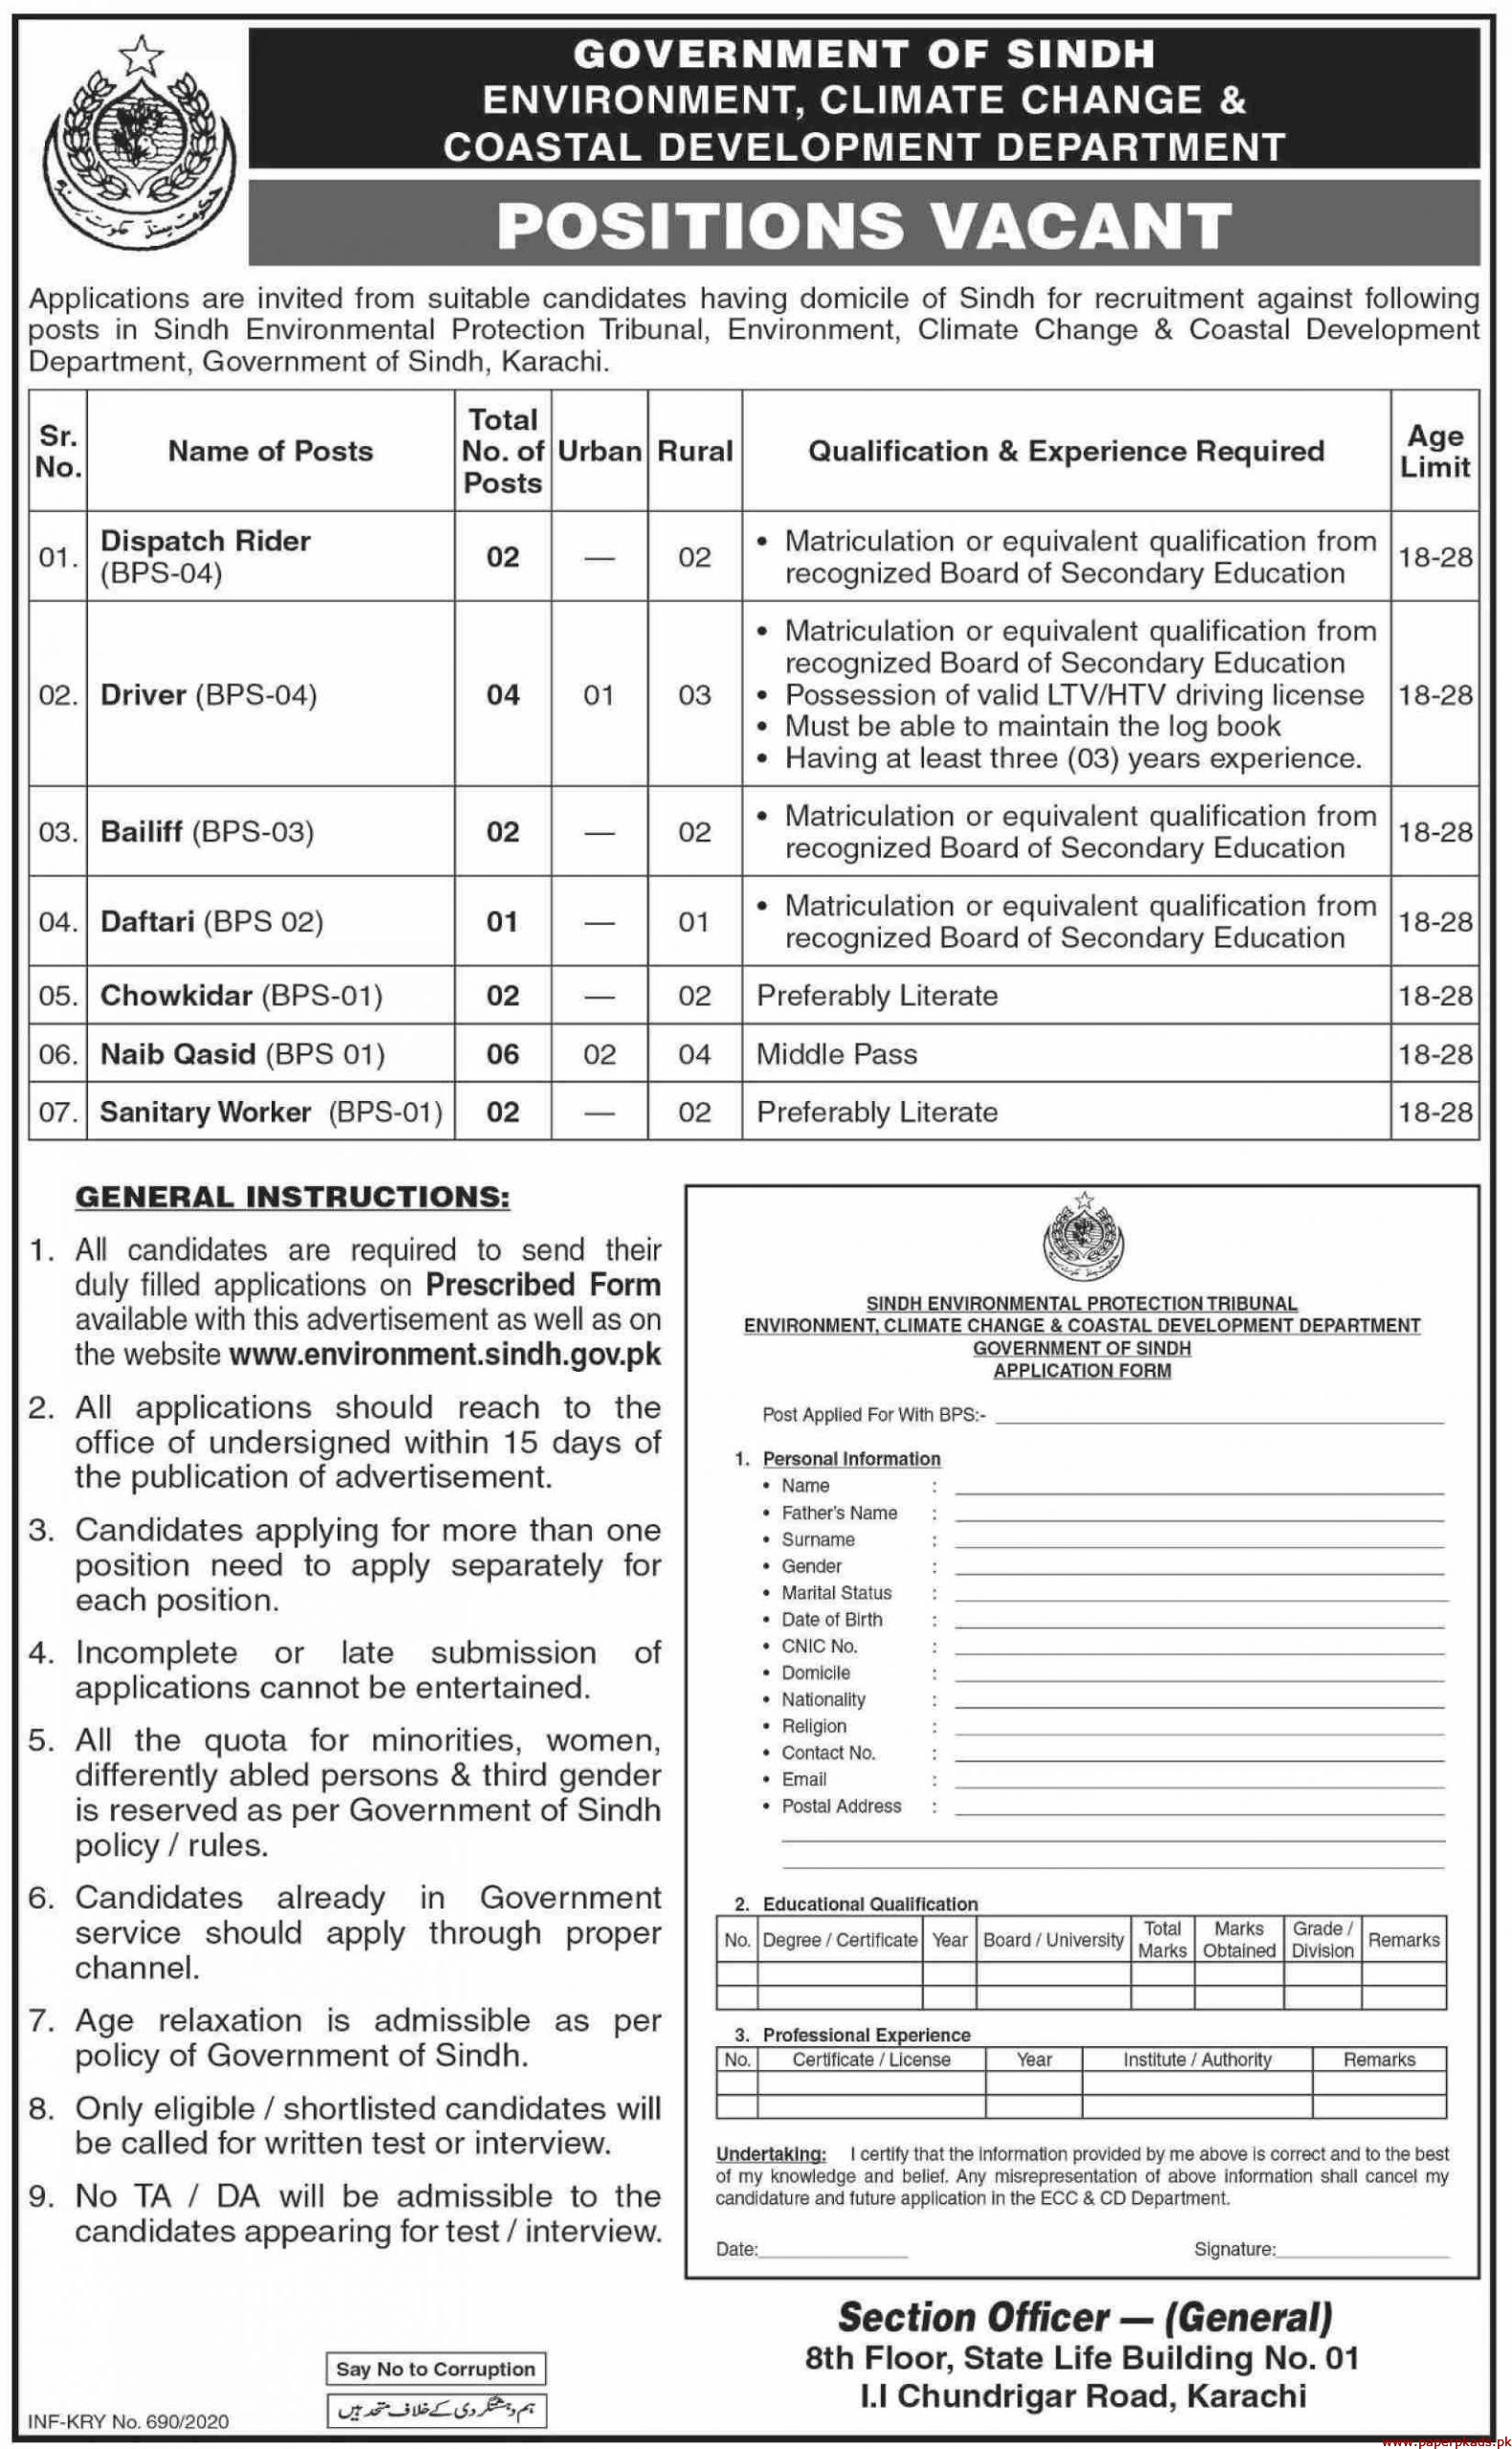 Government of Sindh Environment Climate change & Coastal Development Department Jobs 2020 Latest